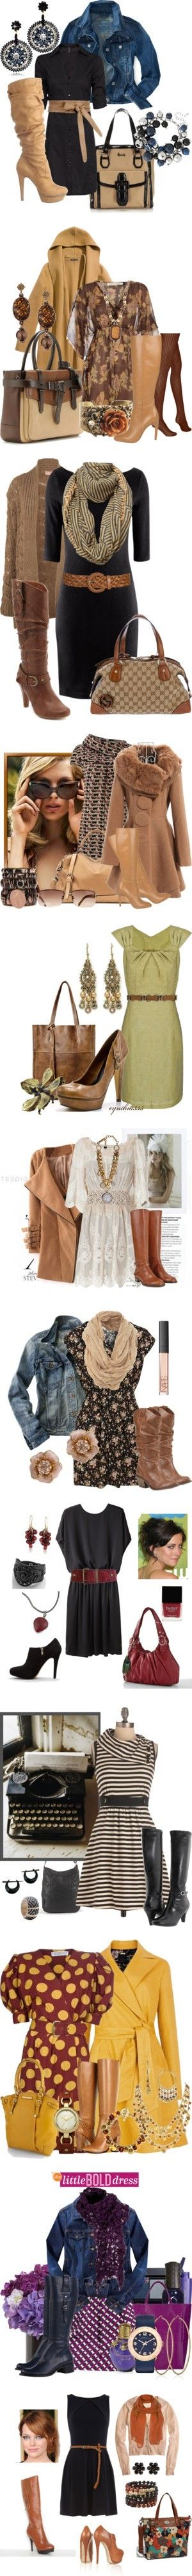 """Love that Dress"" by stylesbyjoey on Polyvore"